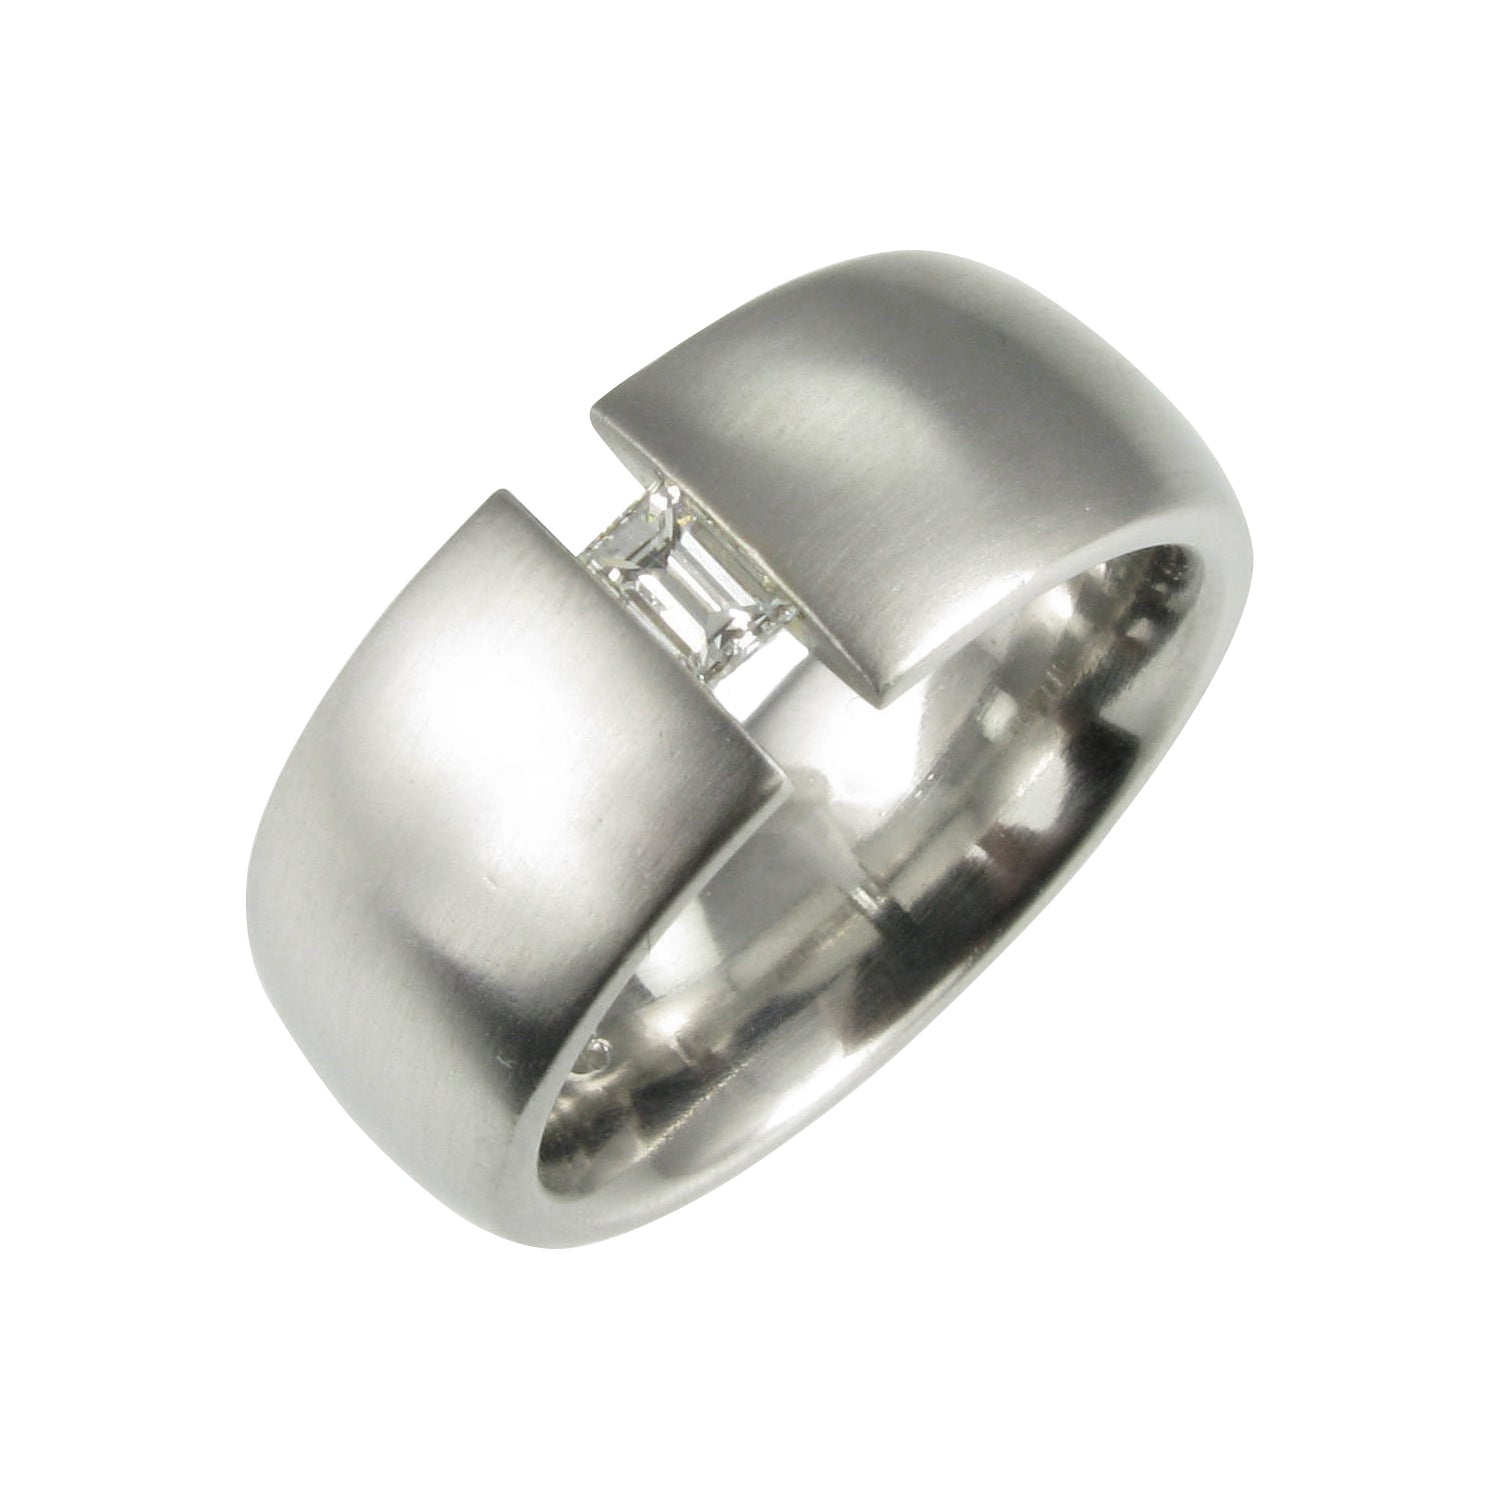 Gents Tension Set Wedding Ring.